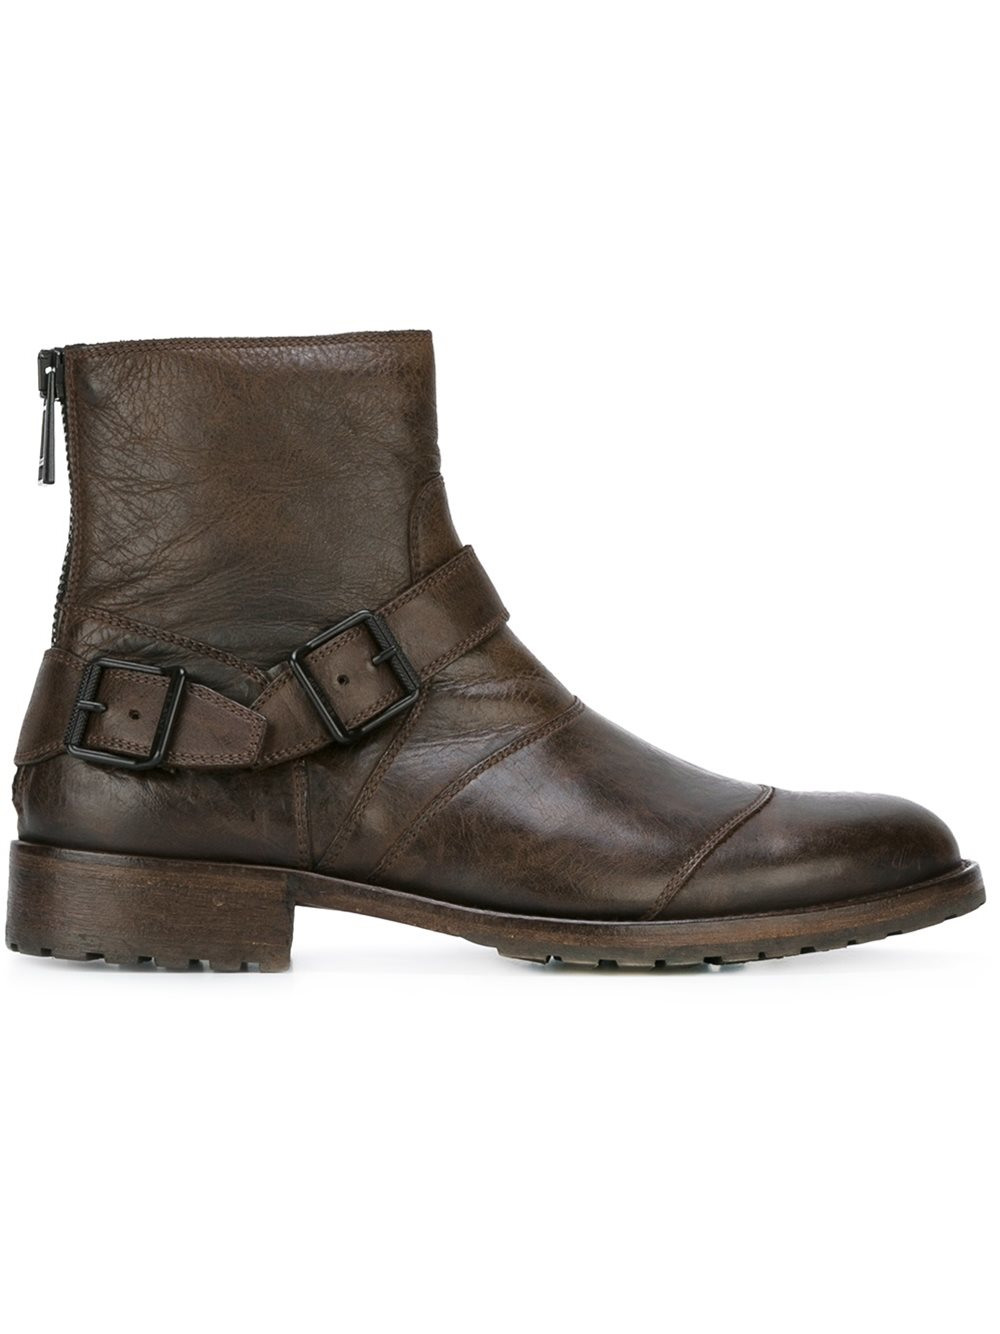 Free shipping BOTH ways on buckle boots, from our vast selection of styles. Fast delivery, and 24/7/ real-person service with a smile. Click or call